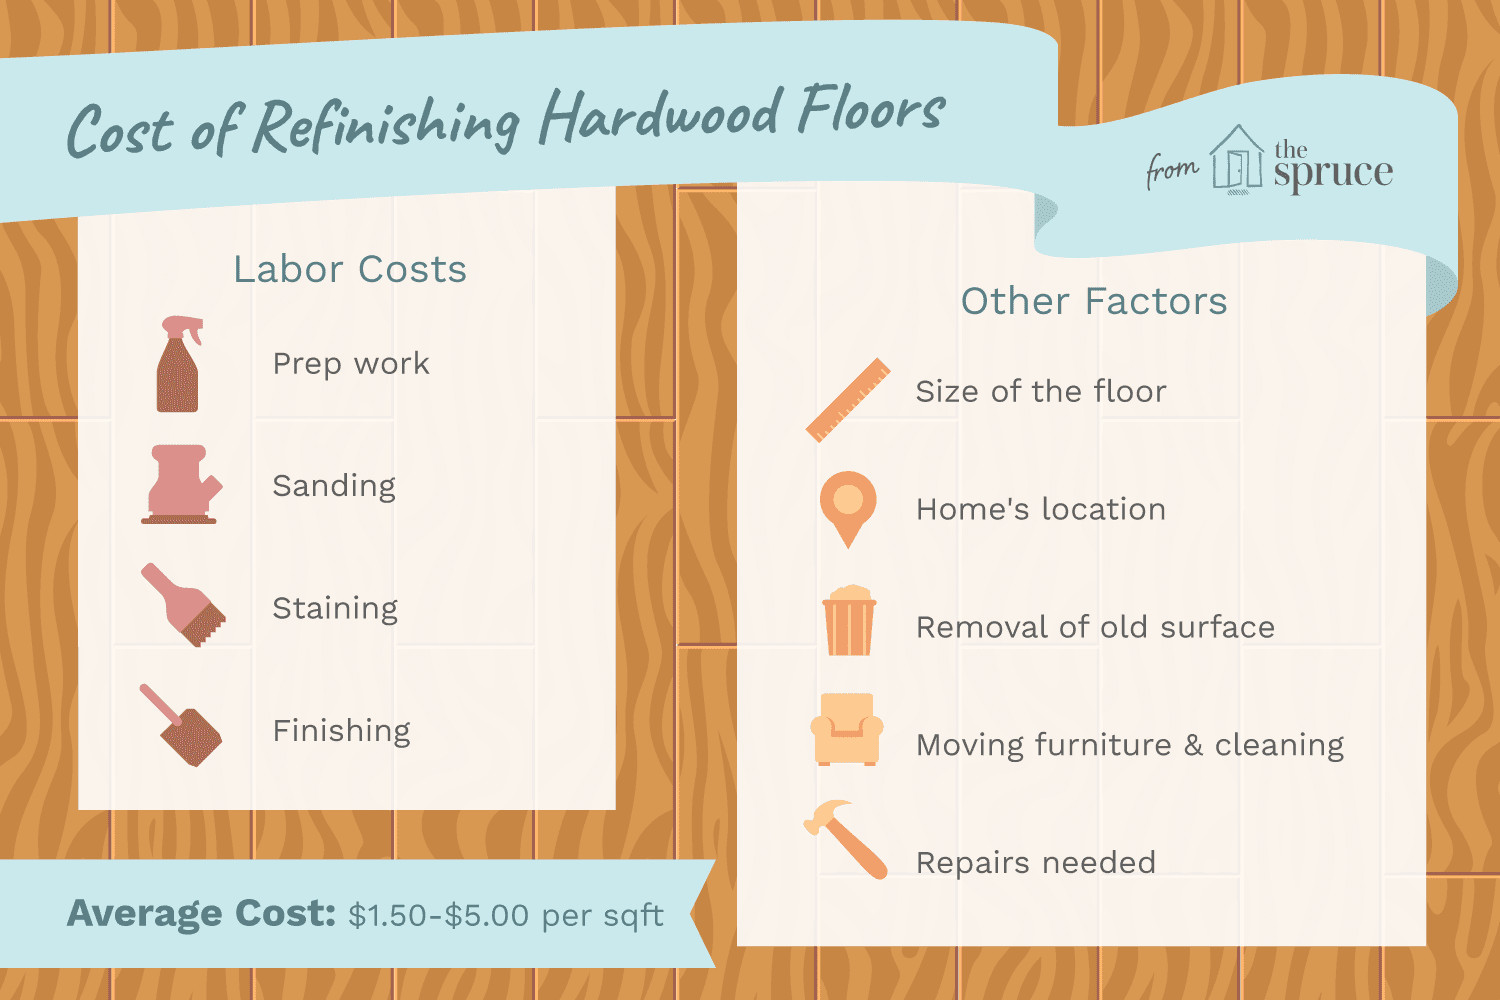 hardwood flooring chattanooga of the cost to refinish hardwood floors inside cost to refinish hardwood floors 1314853 final 5bb6259346e0fb0026825ce2